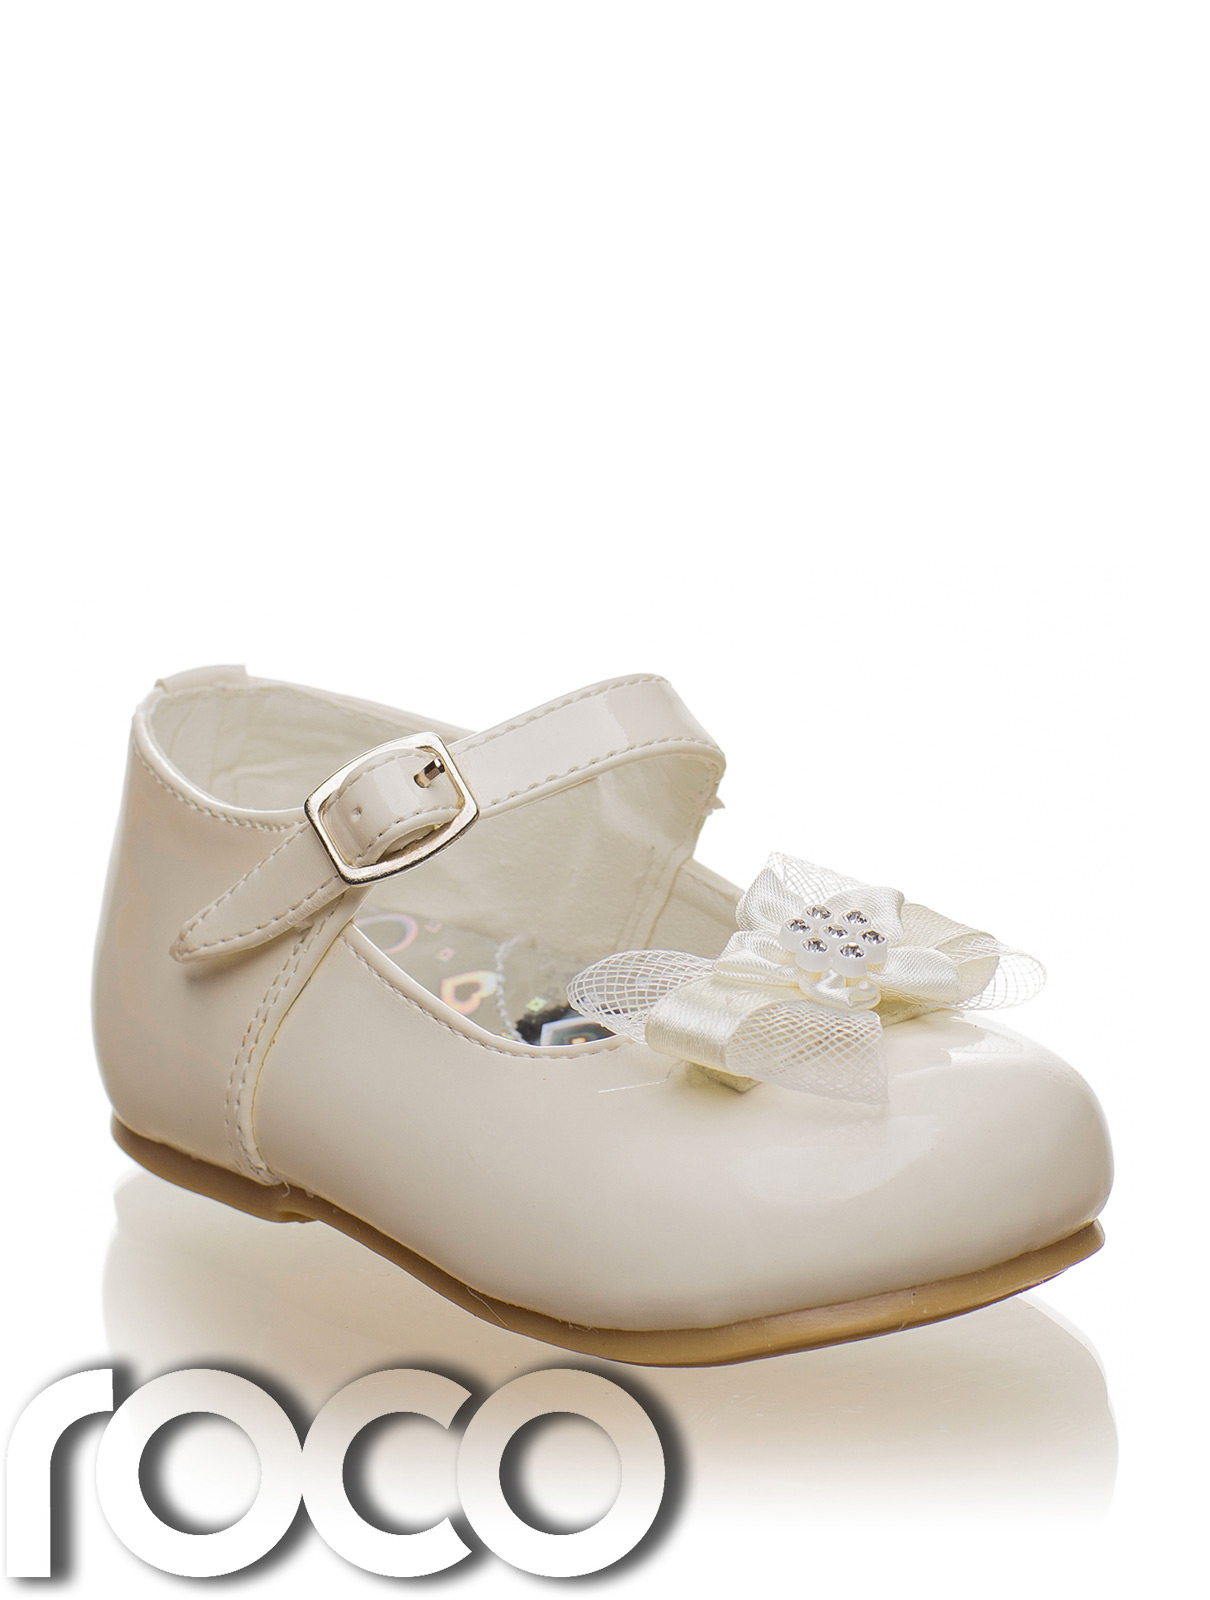 Baby Fashion Shoes. We use luxurious Italian leathers to make them super soft and durable.